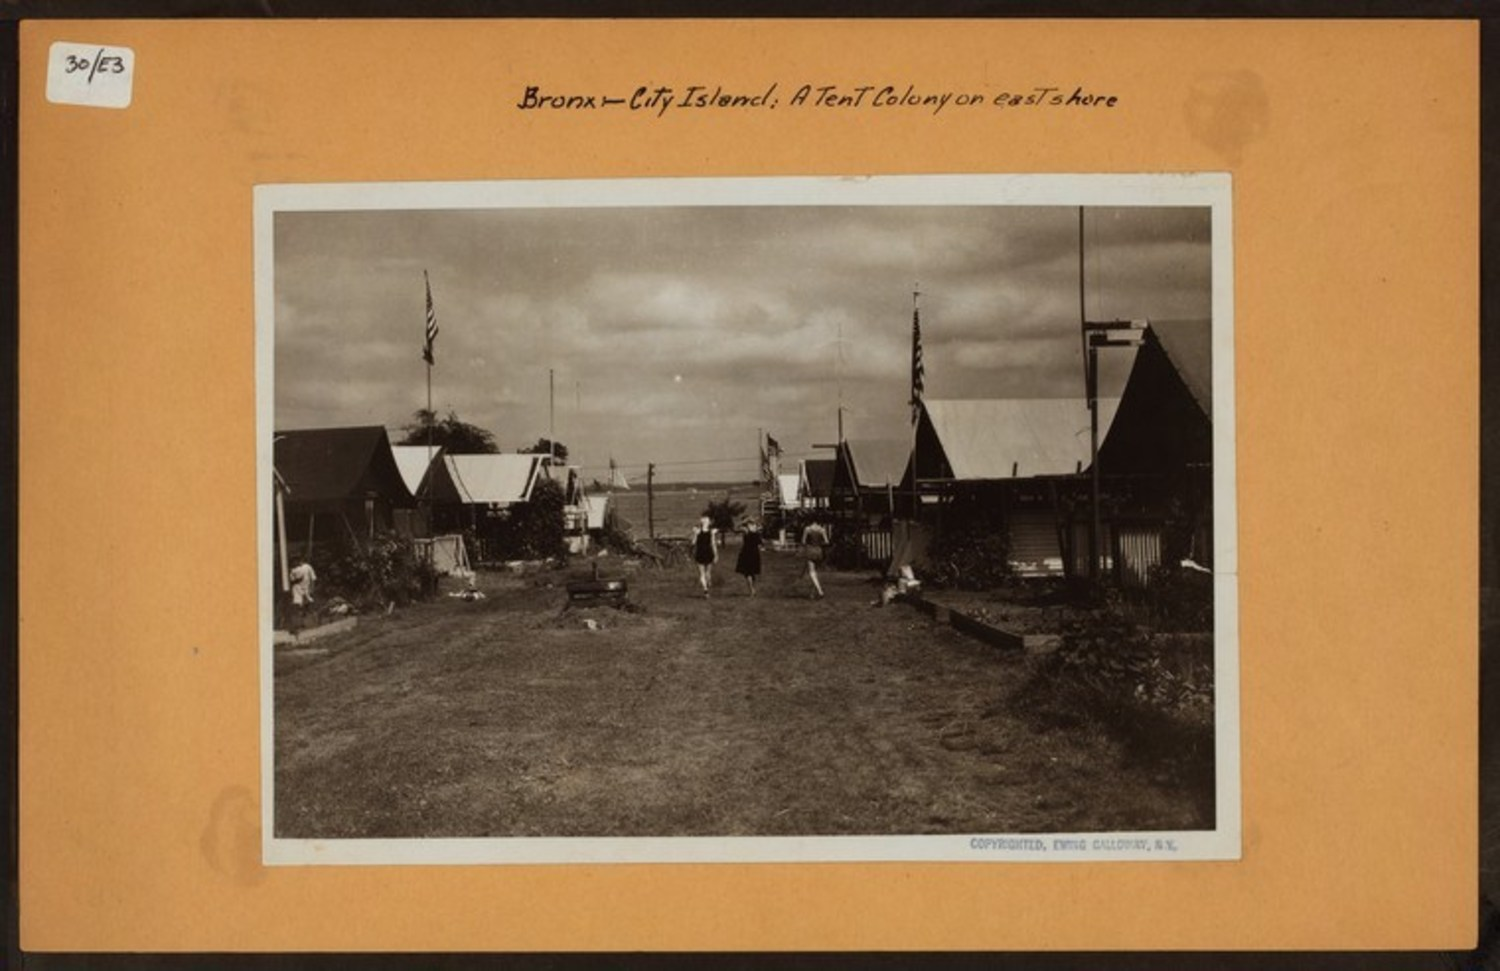 Bronx: City Island : a tent colony on east shore.